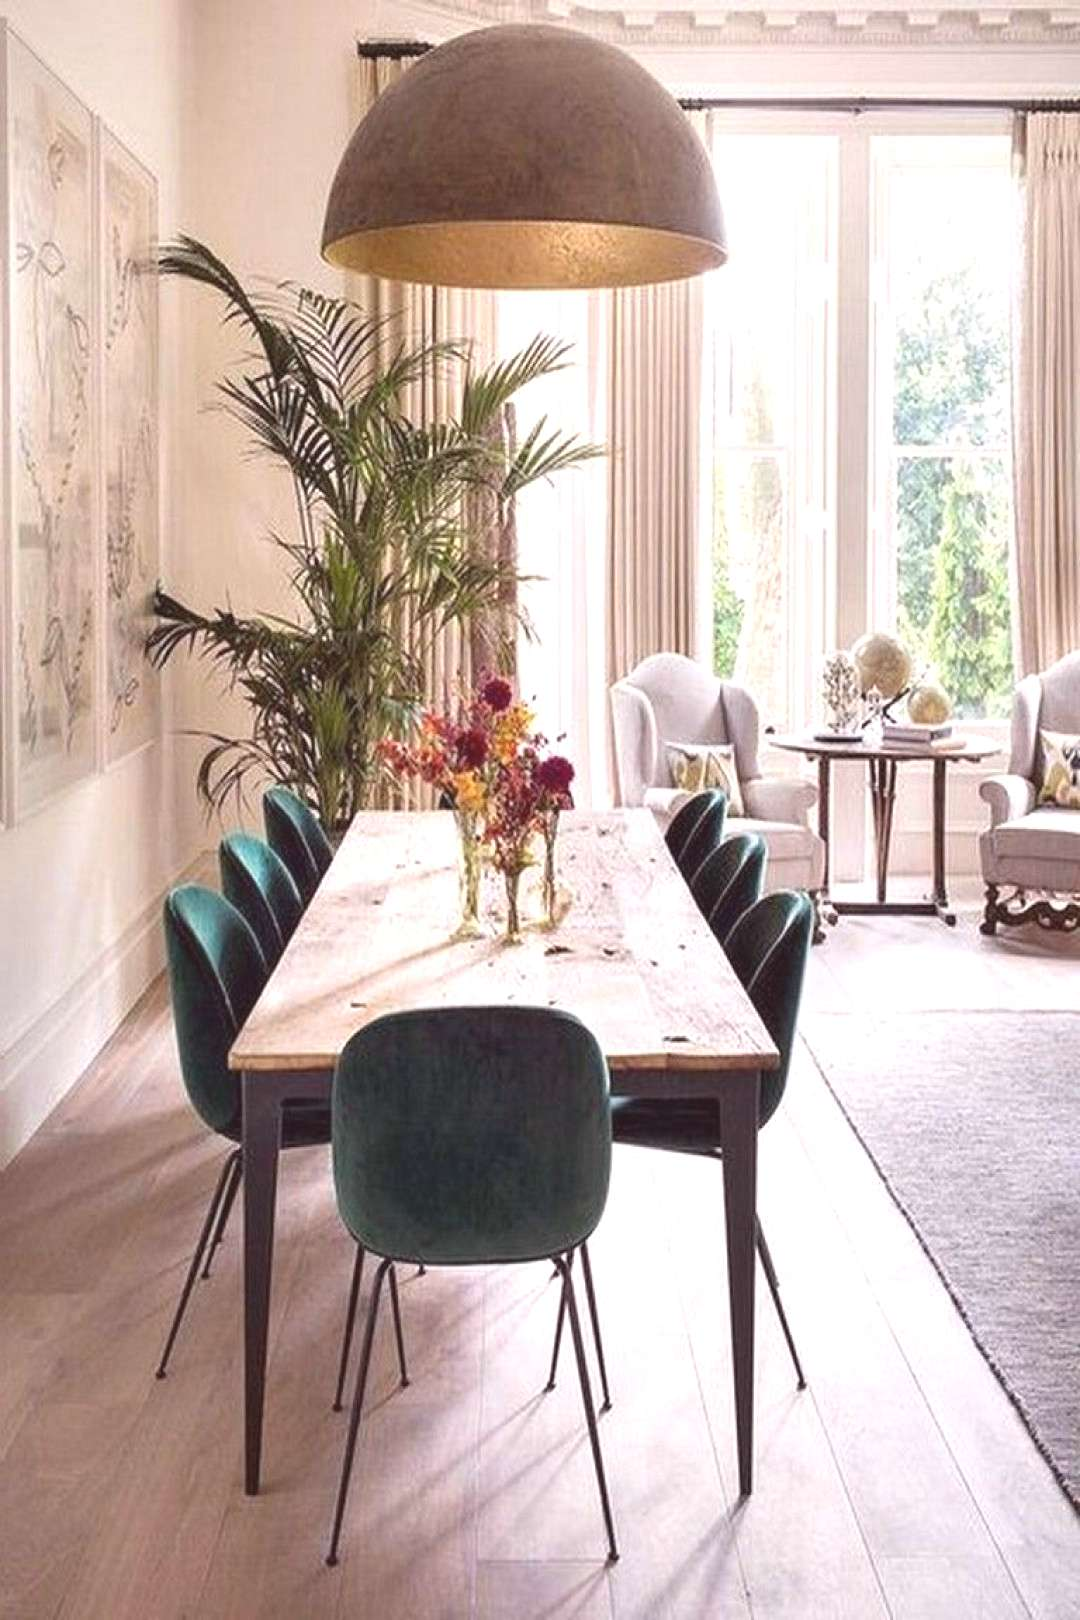 39+ Finest Scandinavian Dining Room Design Ideas With Swedish Style